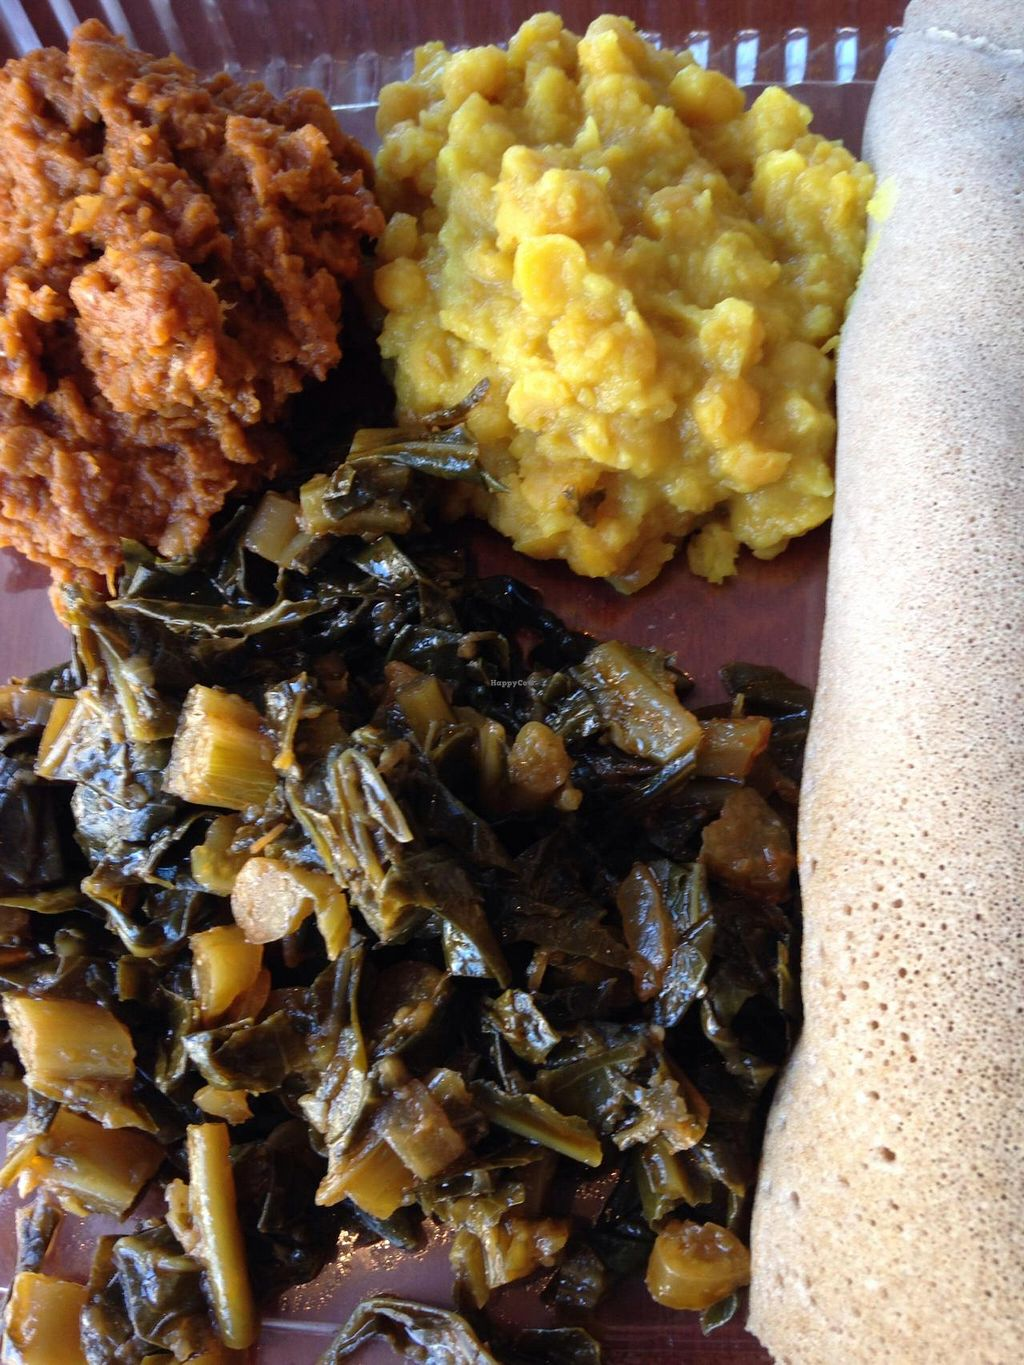 """Photo of CLOSED: Flaxella  by <a href=""""/members/profile/cookiem"""">cookiem</a> <br/>Fasting season vegan Ethiopian food special <br/> April 21, 2014  - <a href='/contact/abuse/image/30165/68213'>Report</a>"""